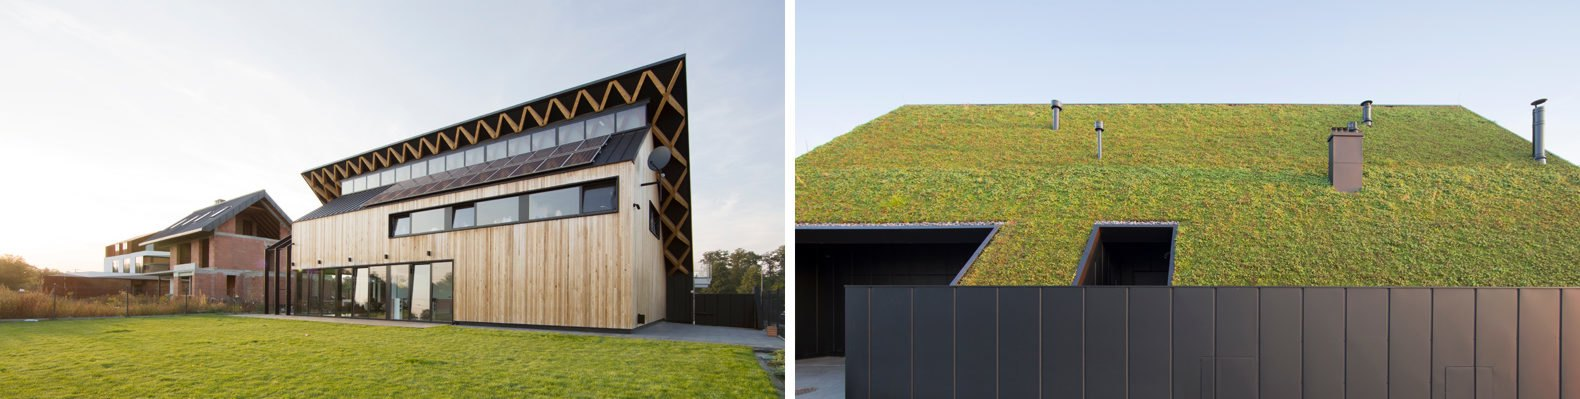 On the left, timber home with sloped roof. On the right, large sloped green roof.